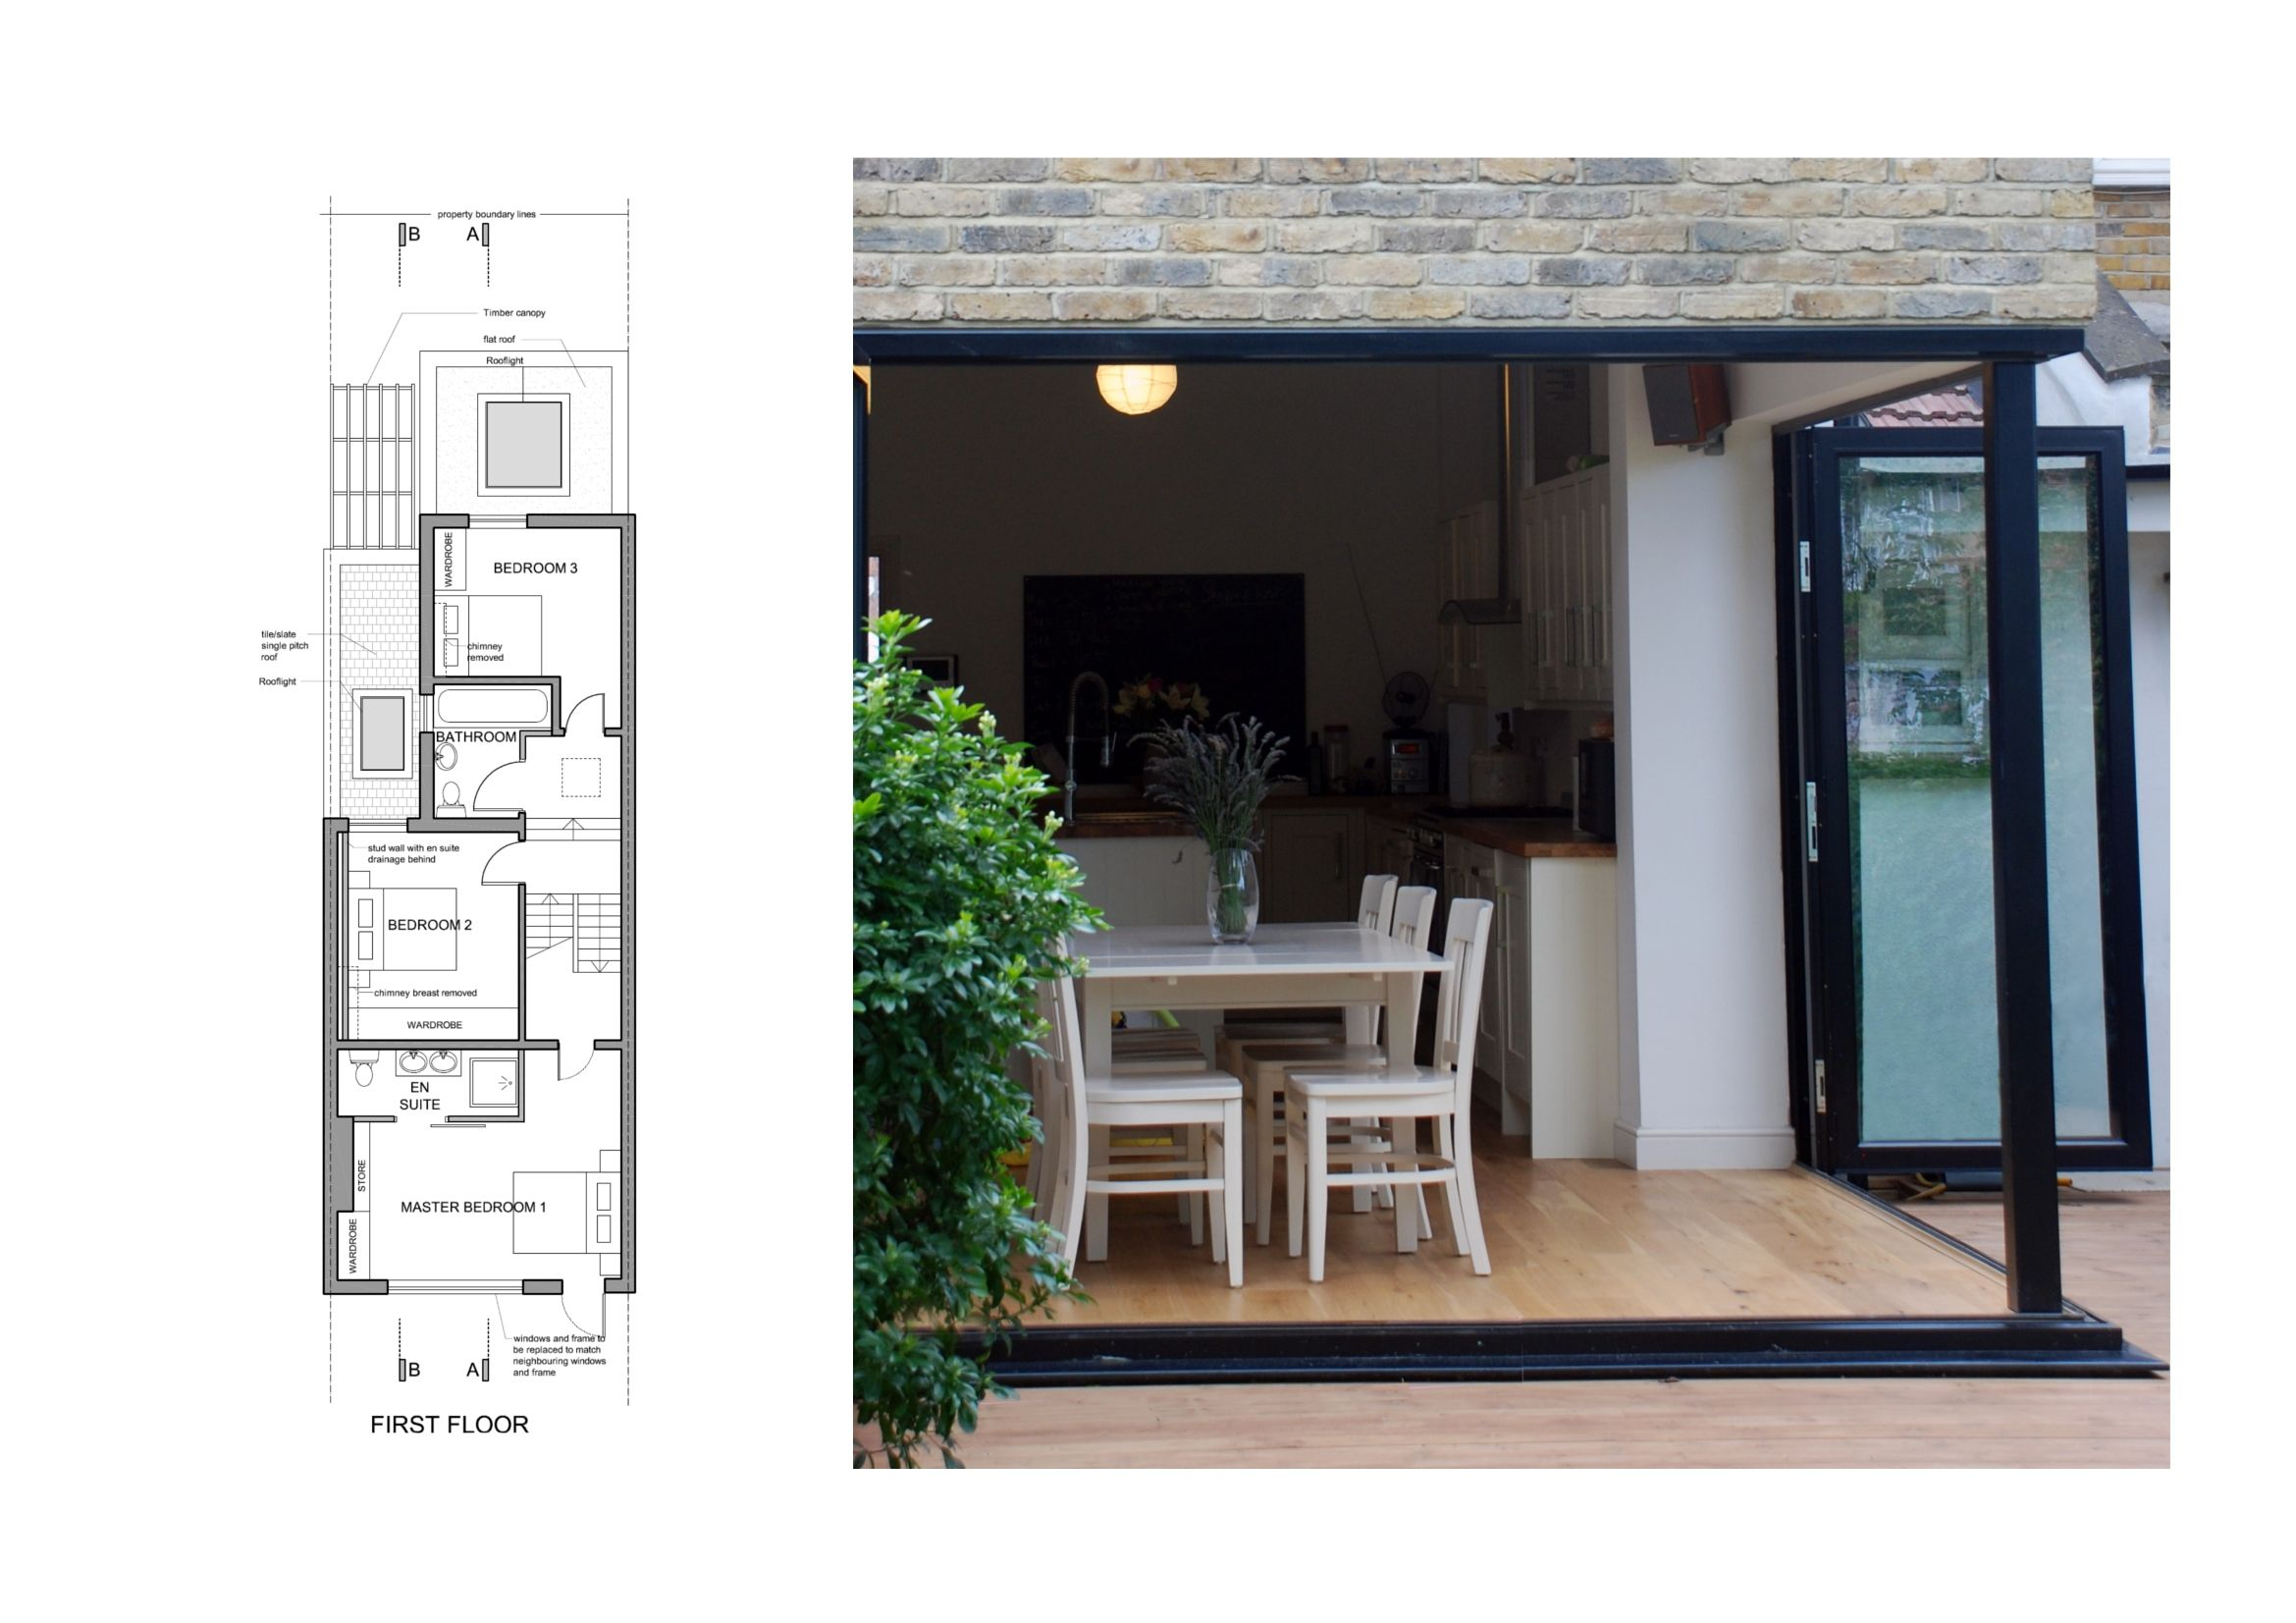 Small house design on terrace house plan design house design ideas 0d - House Extension In East Finchley Barnet By Goa Studios An Award Winning Residential Architecture Firm Based In London Project Spec And Gallery